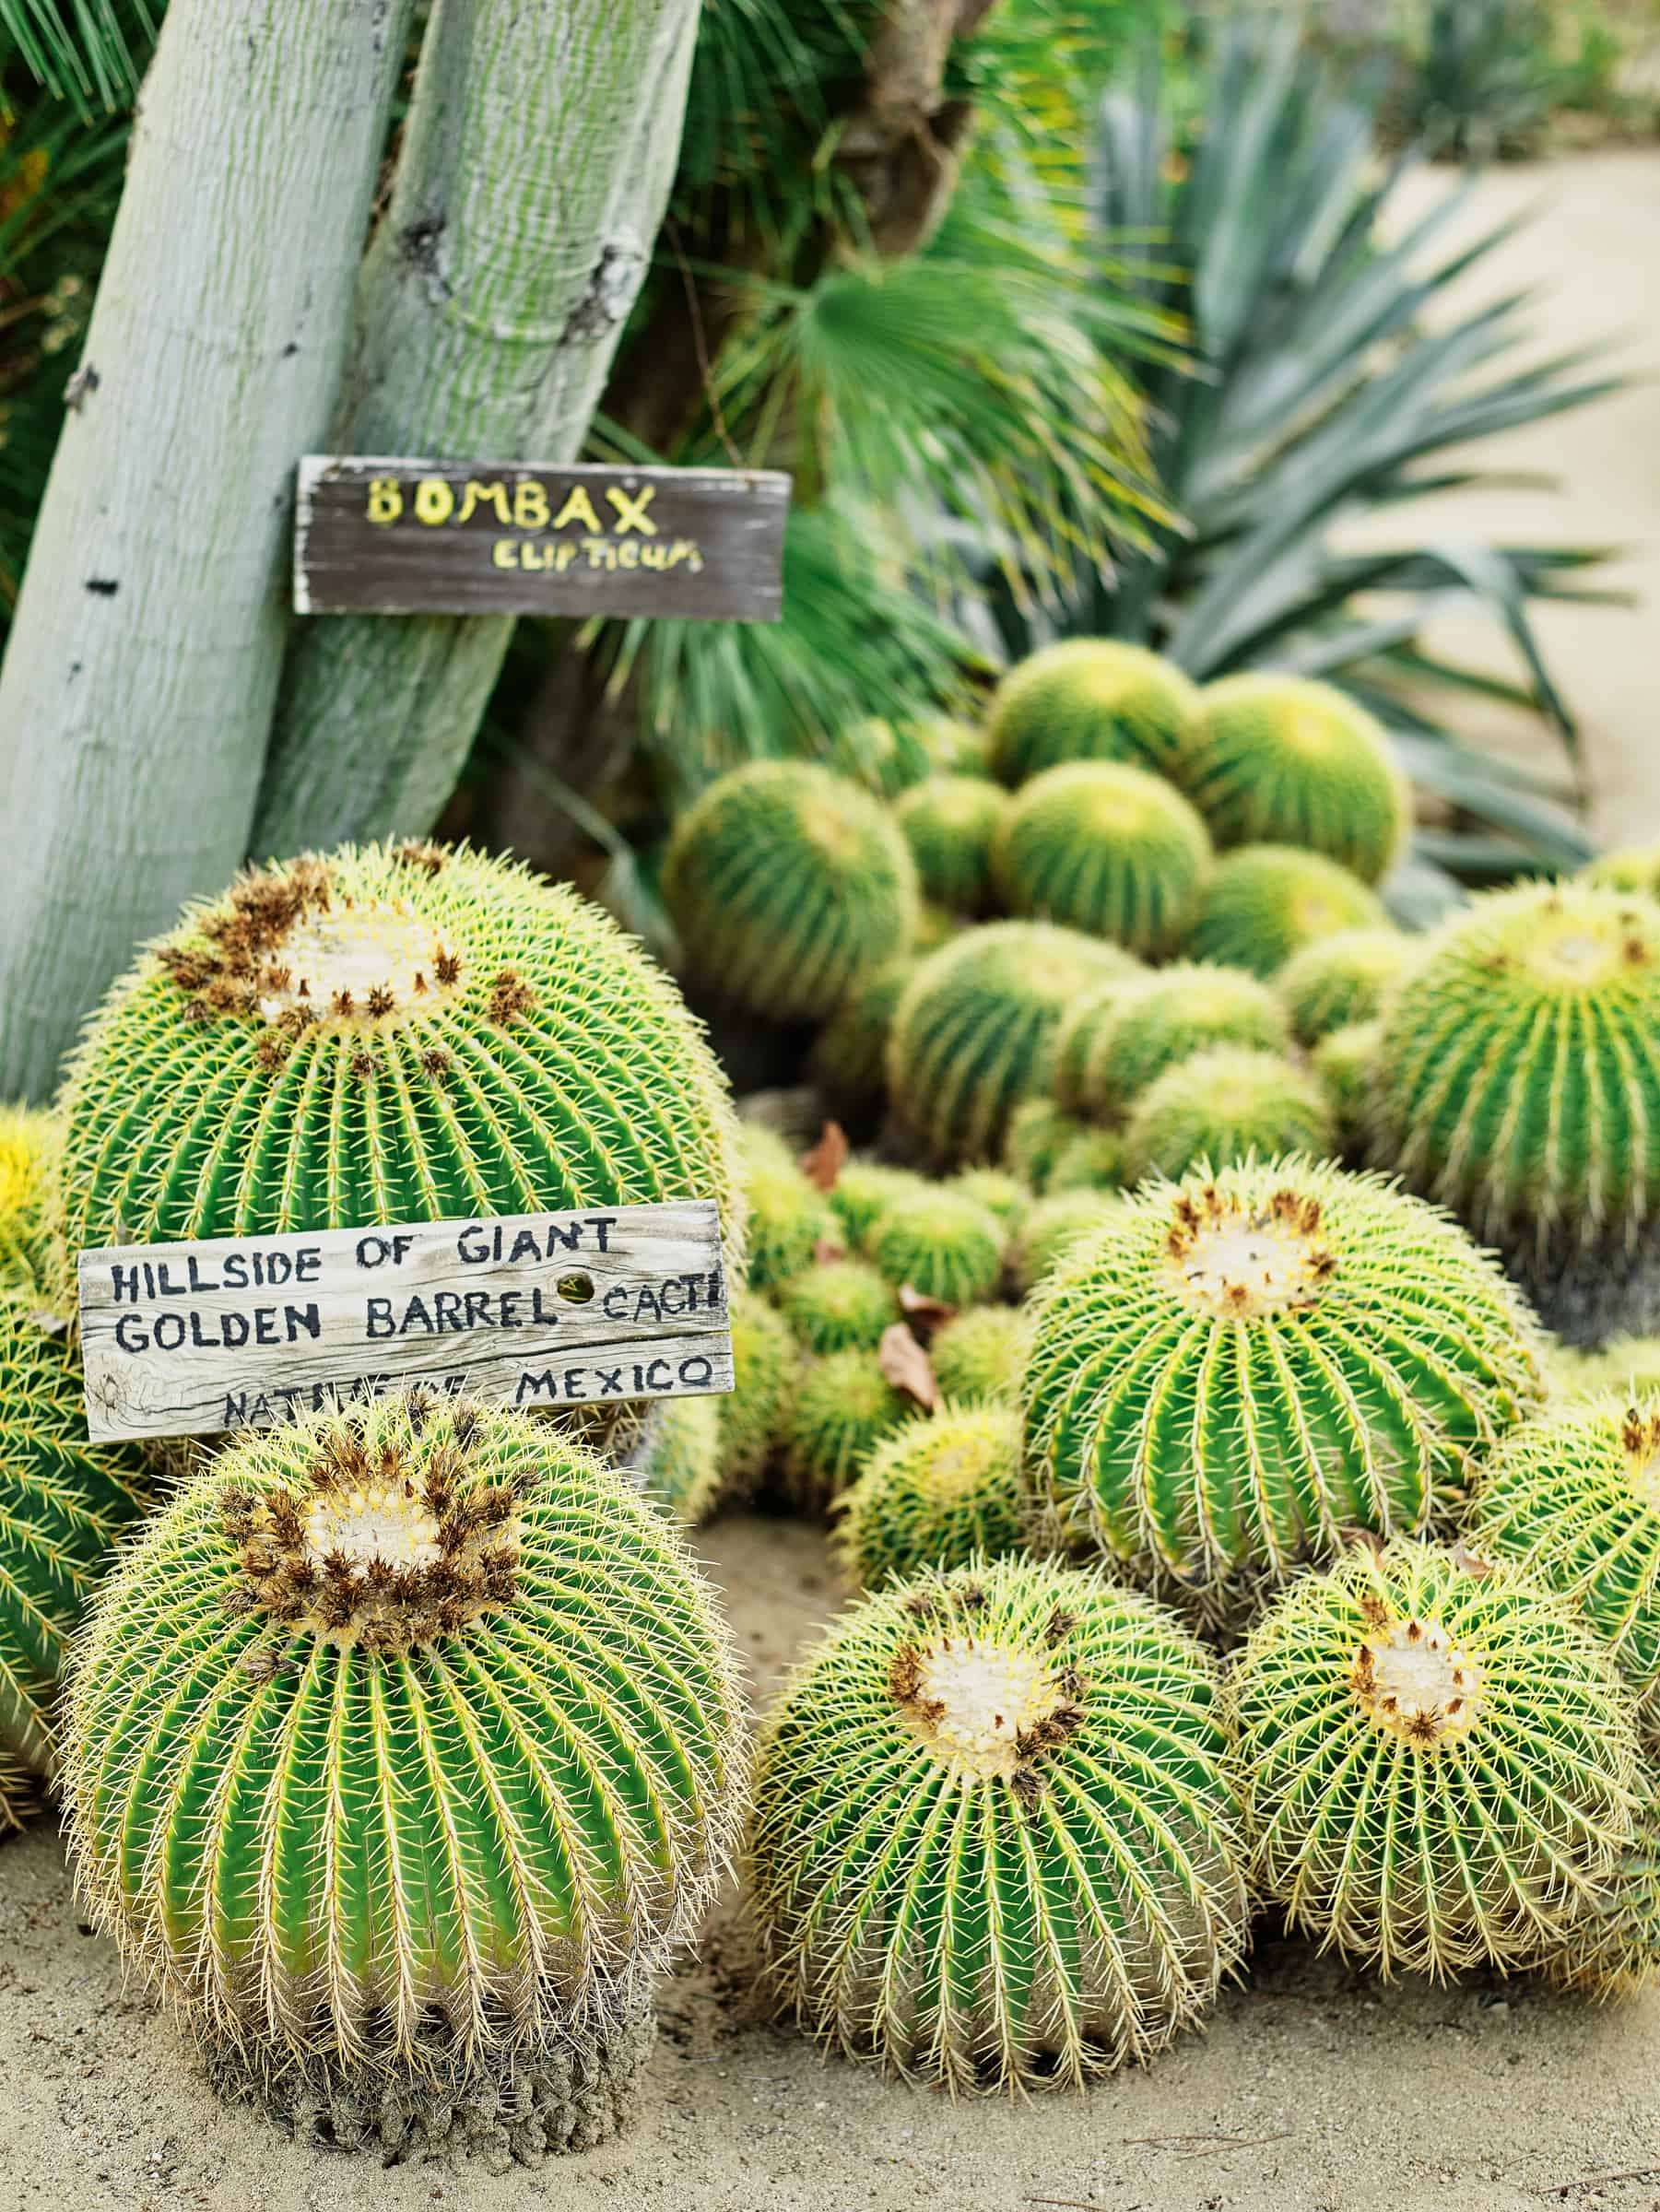 giant golden barrel cacti